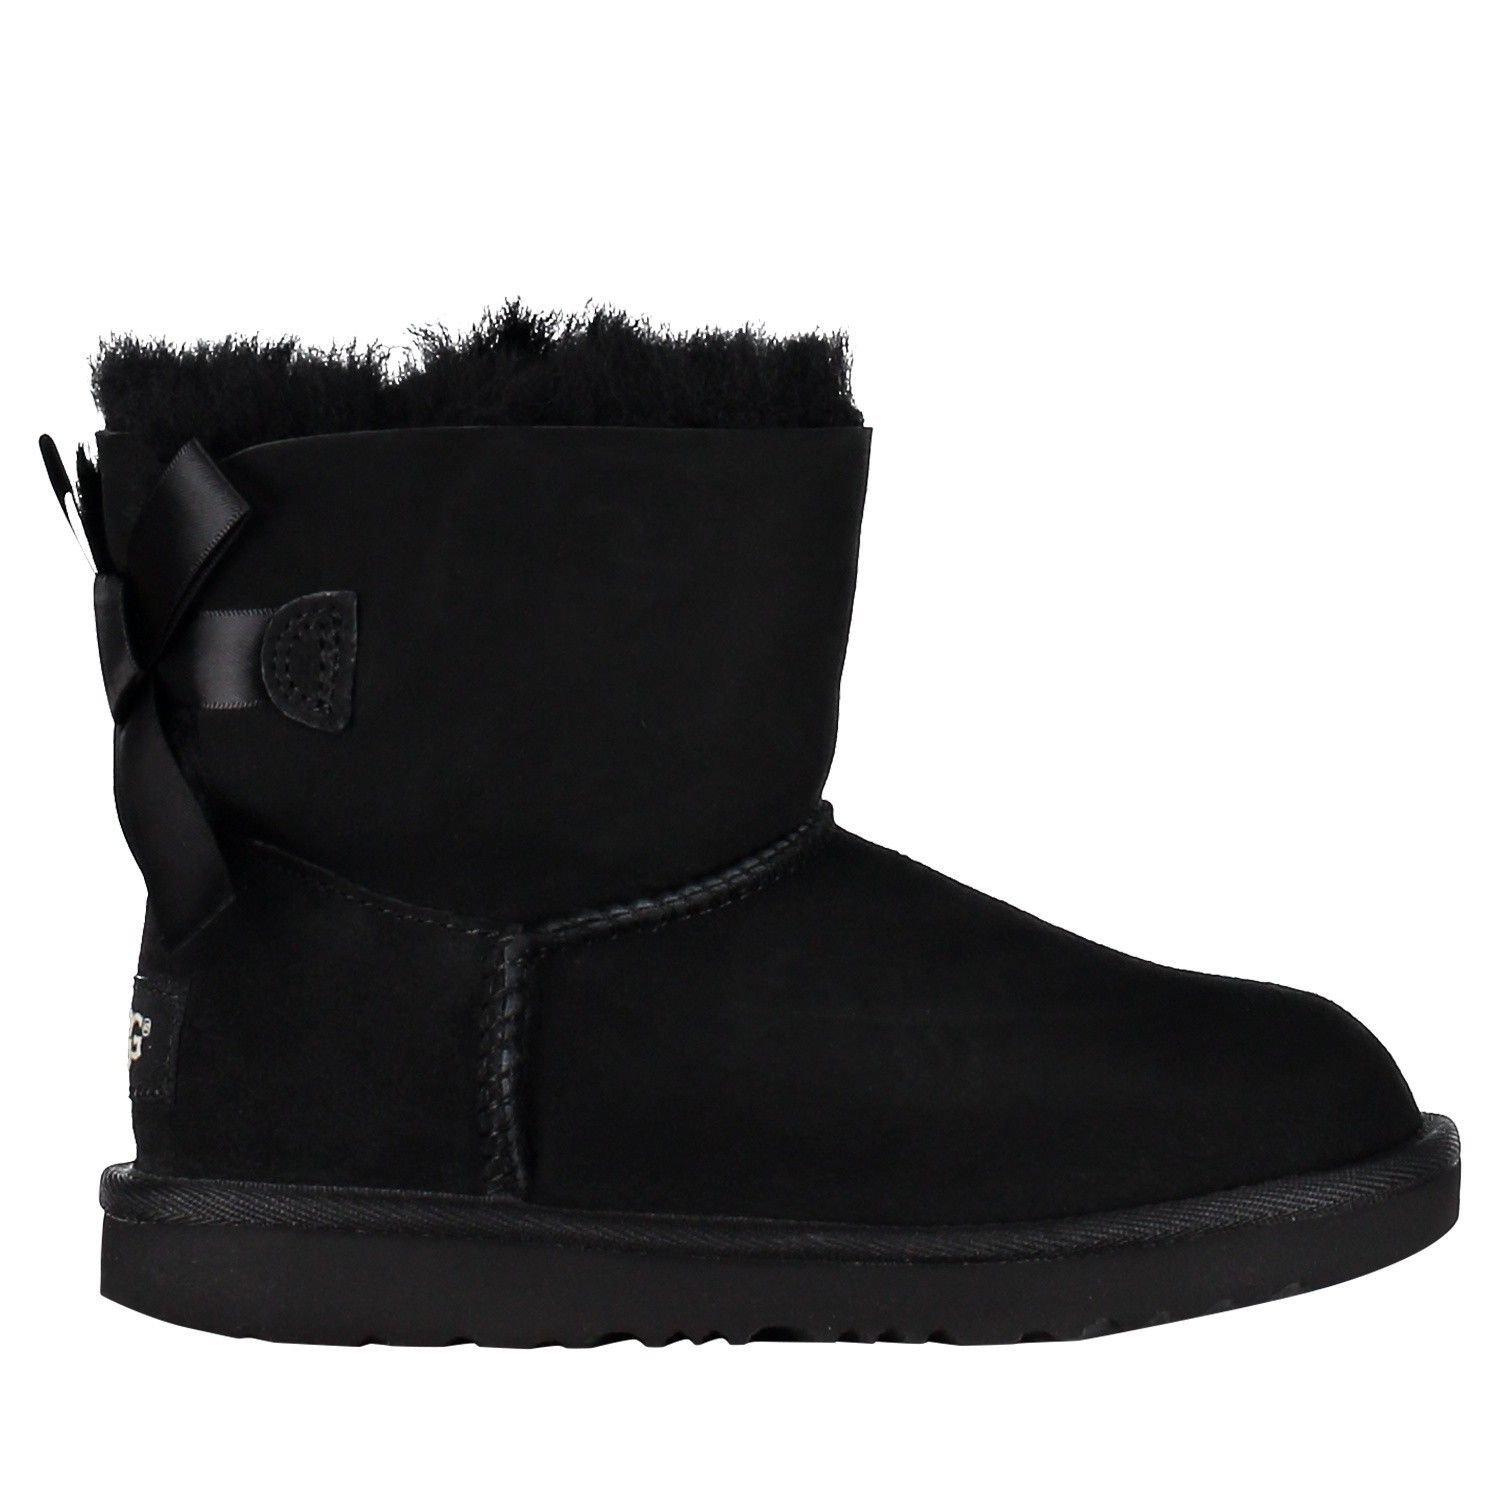 Picture of UGG 1017397 kids boots black